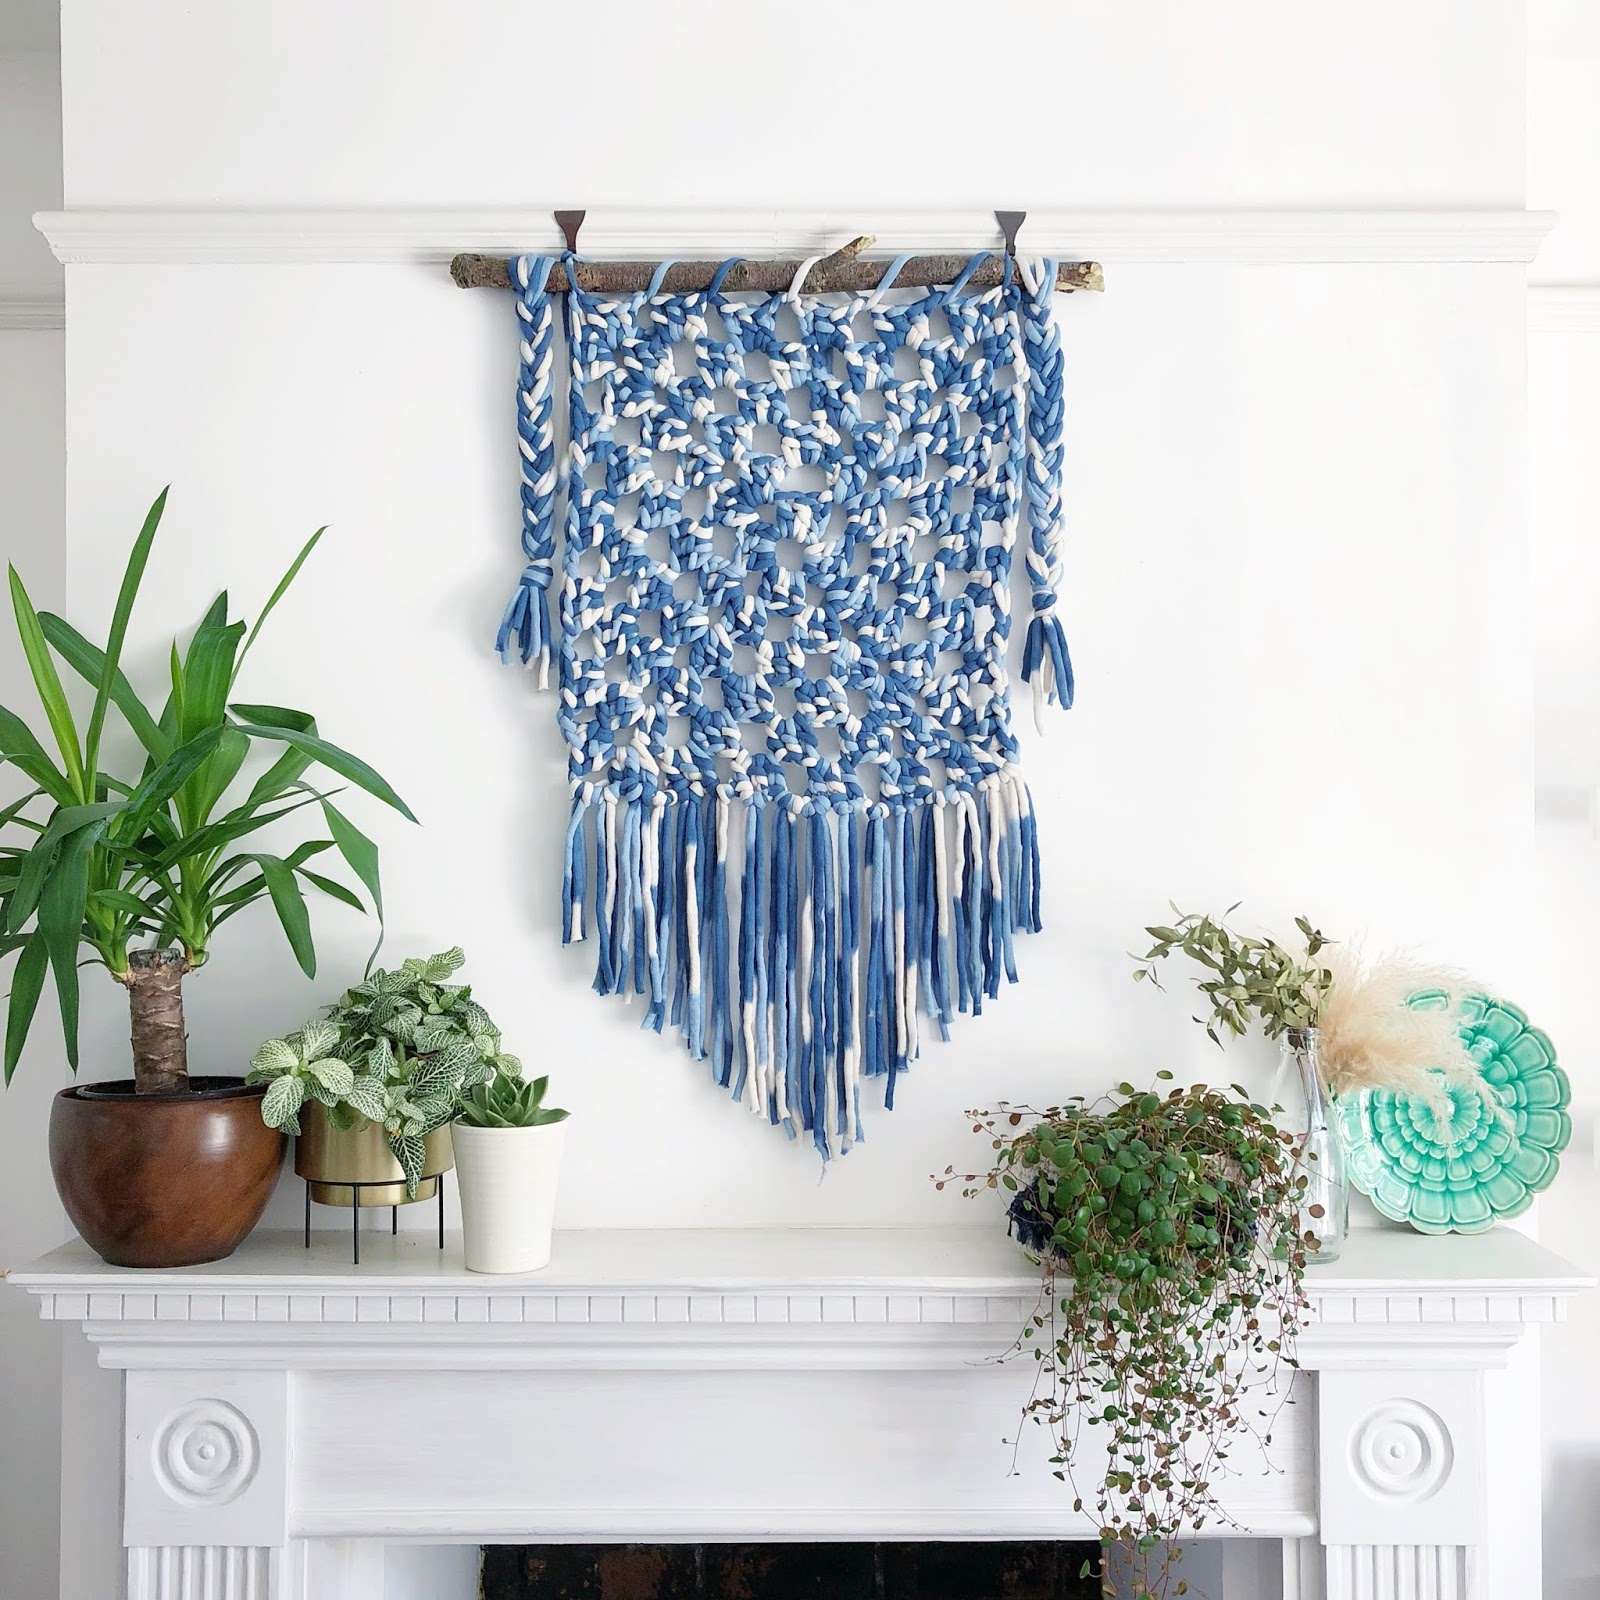 Giant Granny Square Wallhanging - free crochet pattern